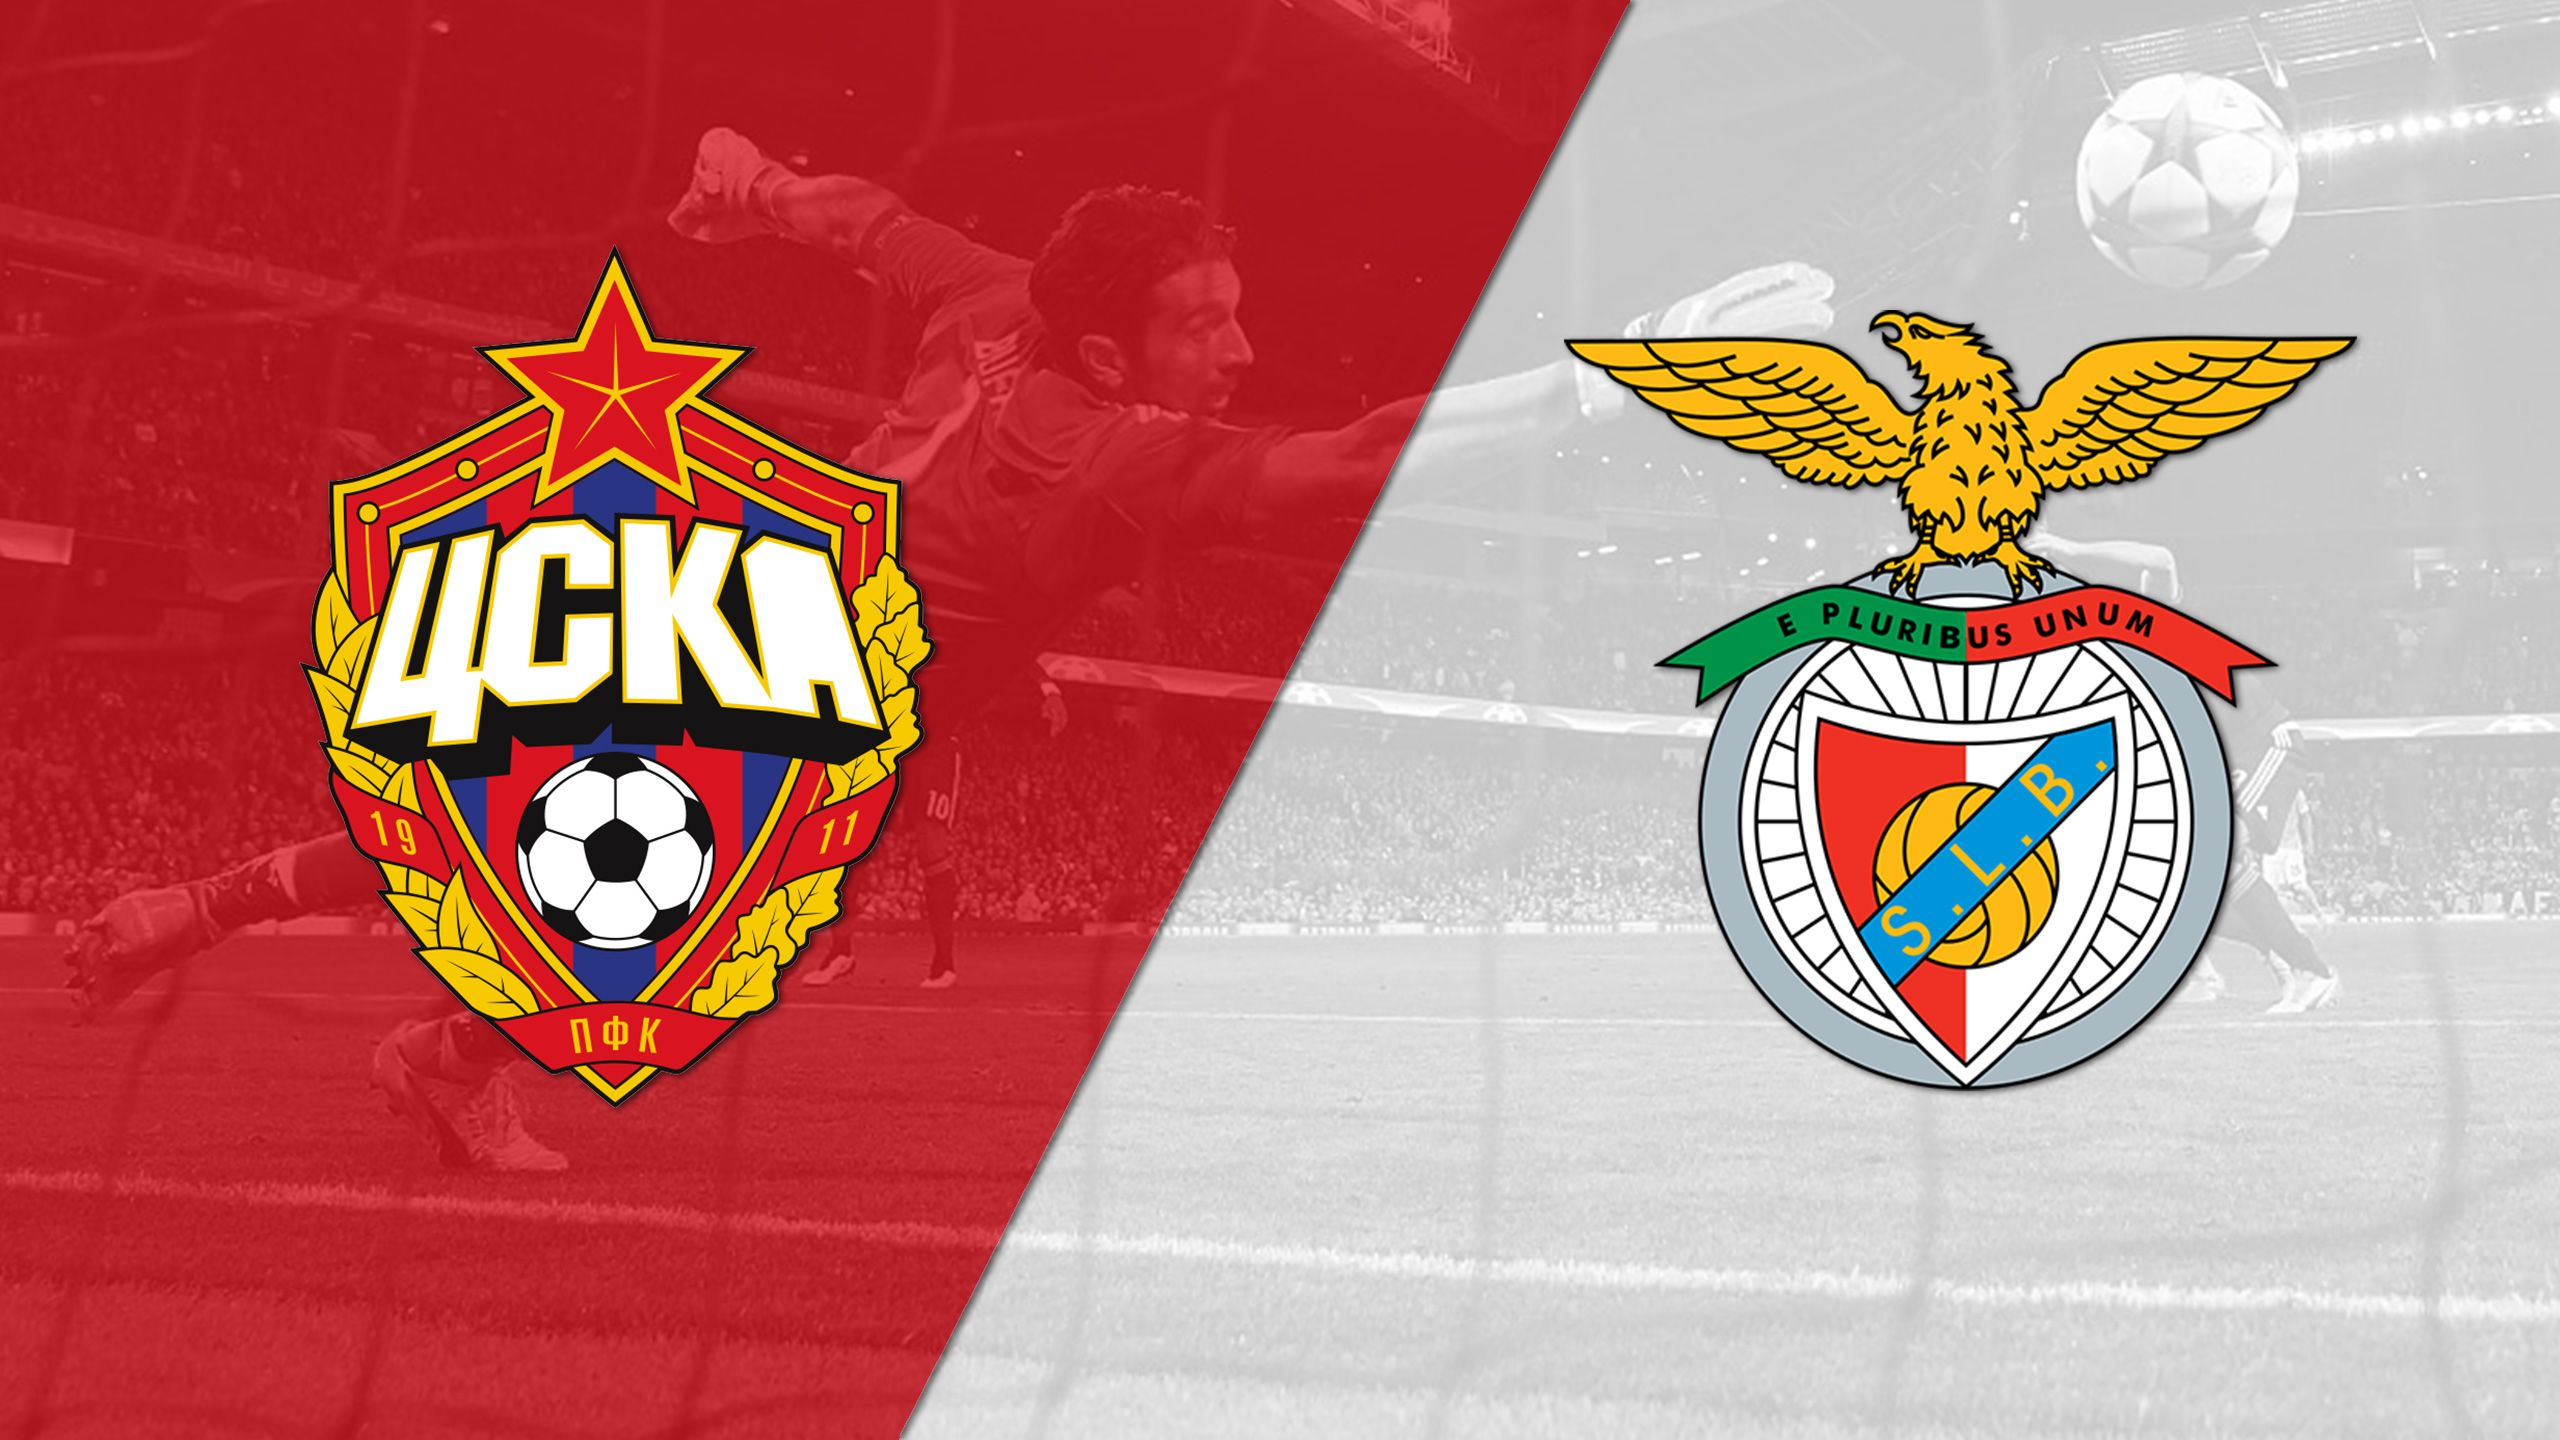 CSKA Moscow vs. Benfica (Group Stage #5) (UEFA Champions League)